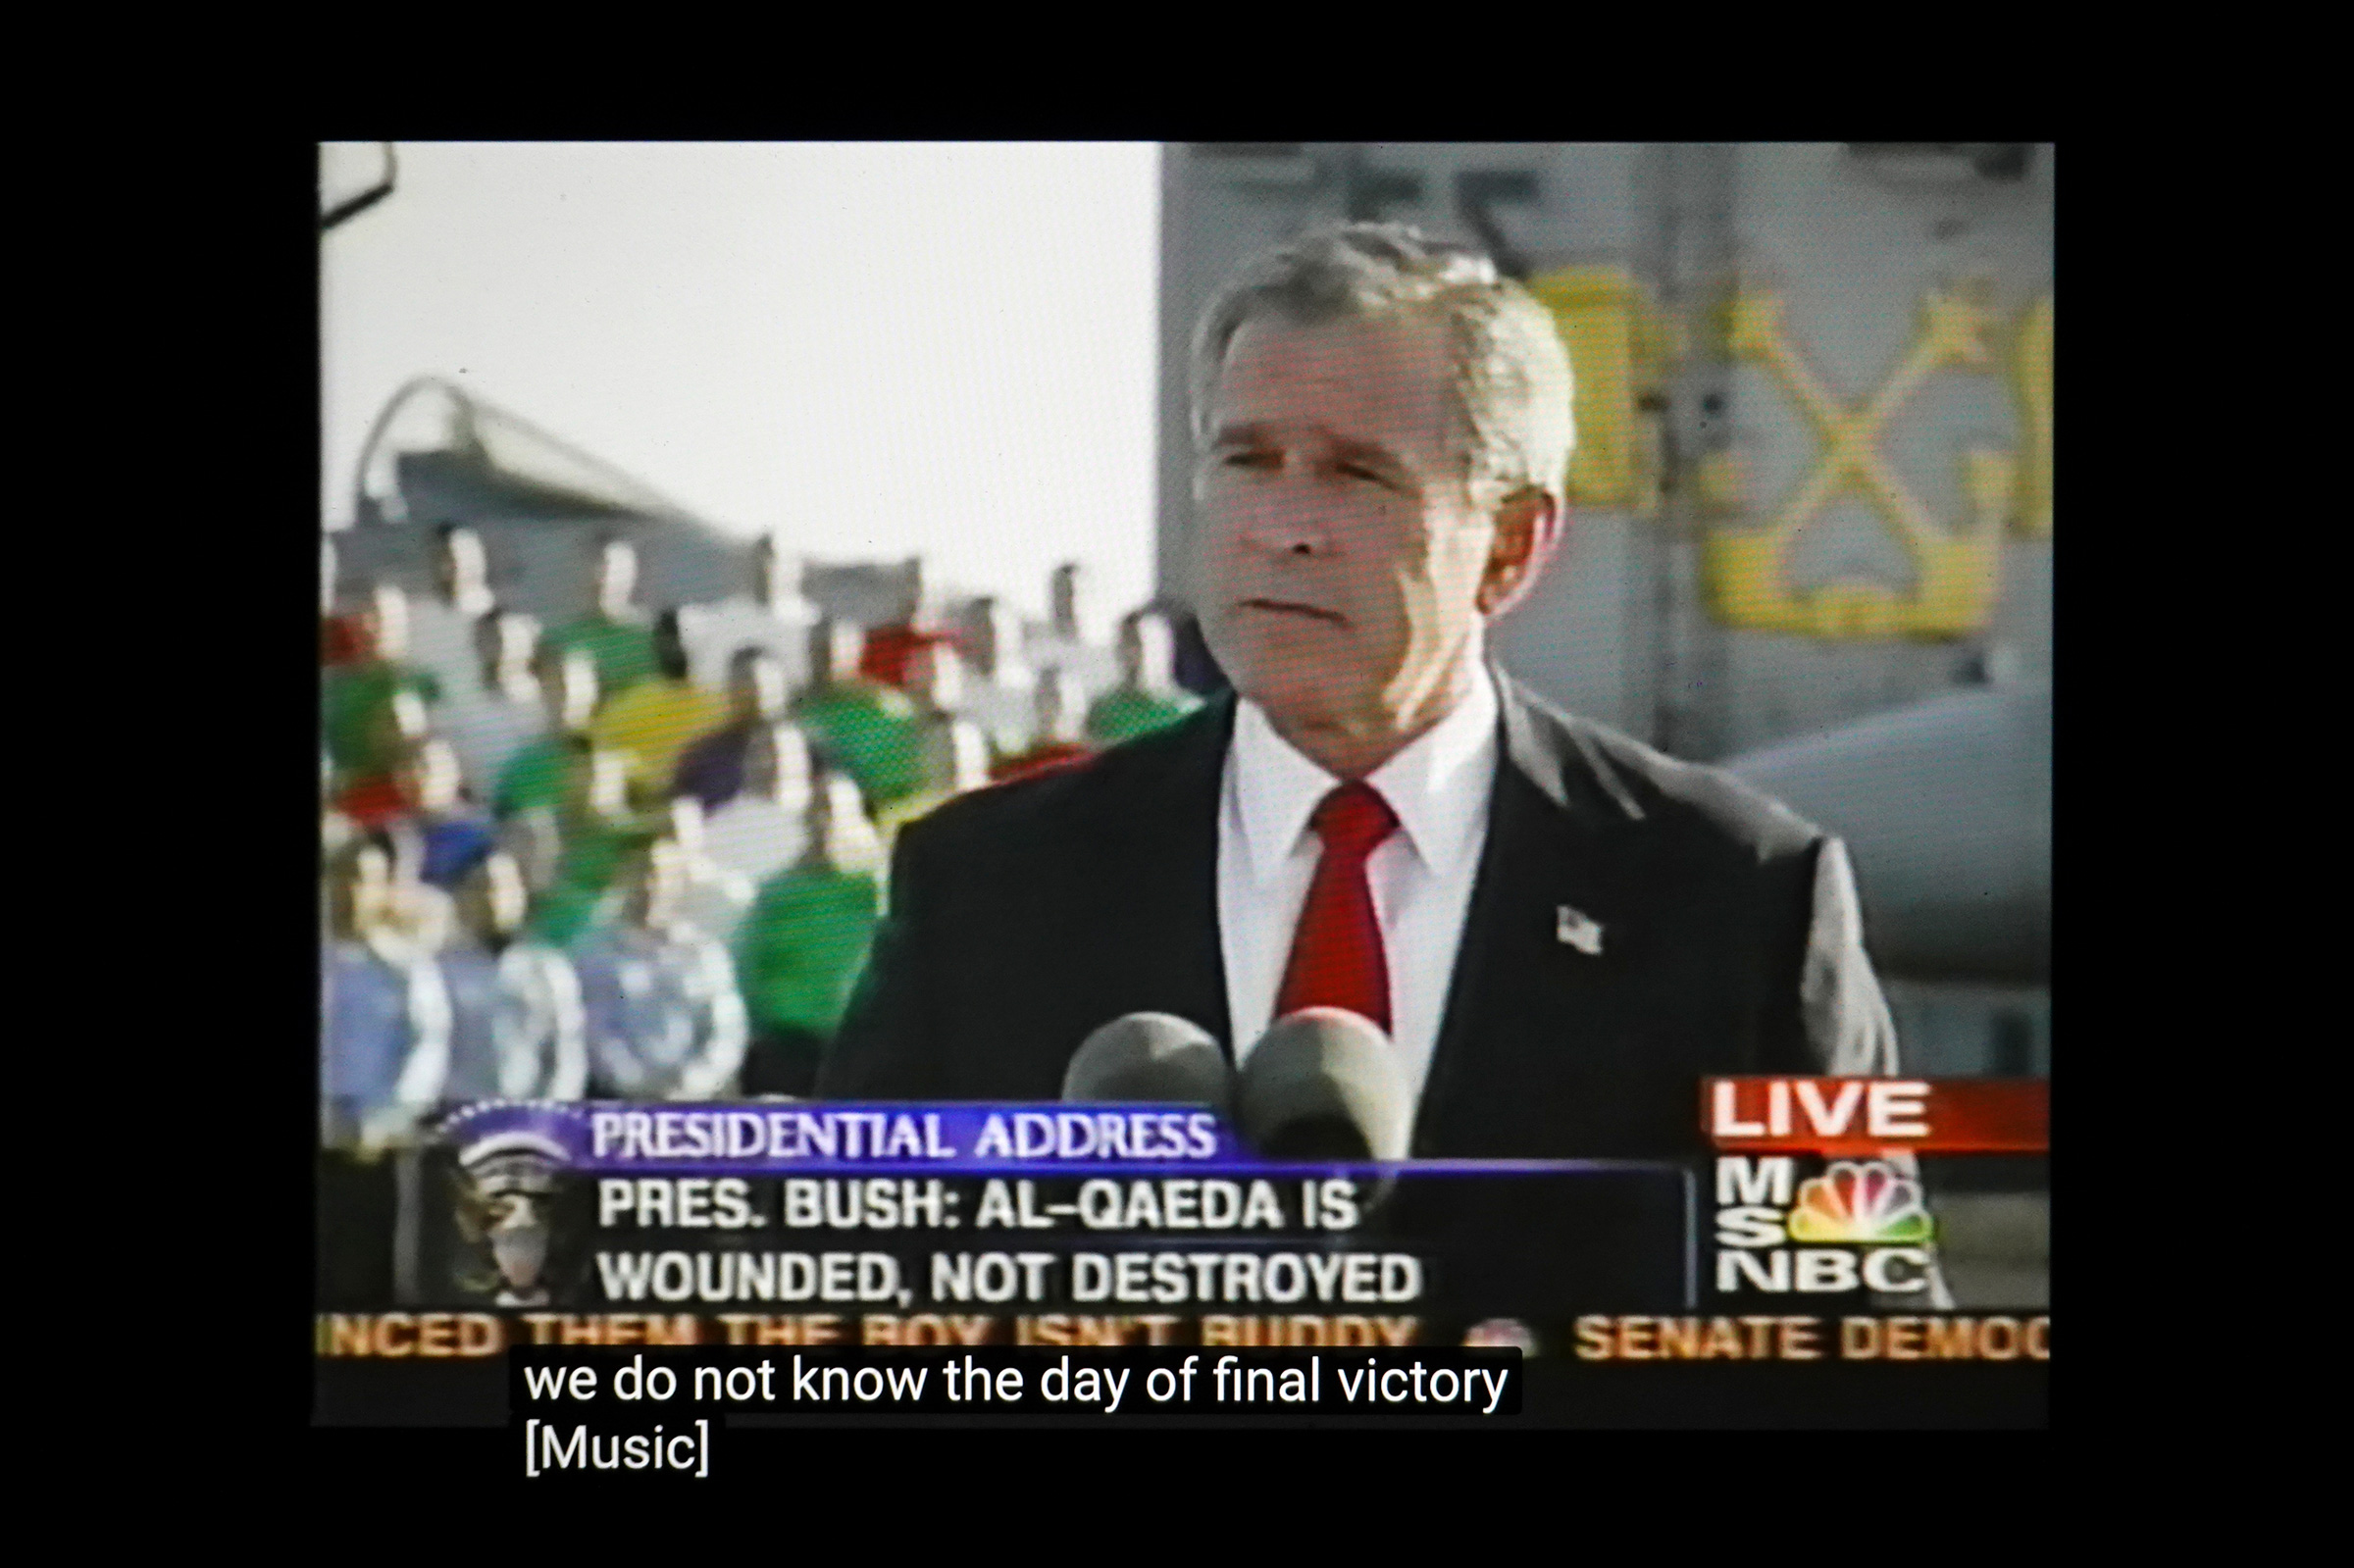 """President George W. Bush announces """"Mission Accomplished"""" regarding the war in Iraq on the aircraft carrier U.S.S. Abraham Lincoln on May 1, 2003. The vast majority of casualties and violence occurred after the speech."""